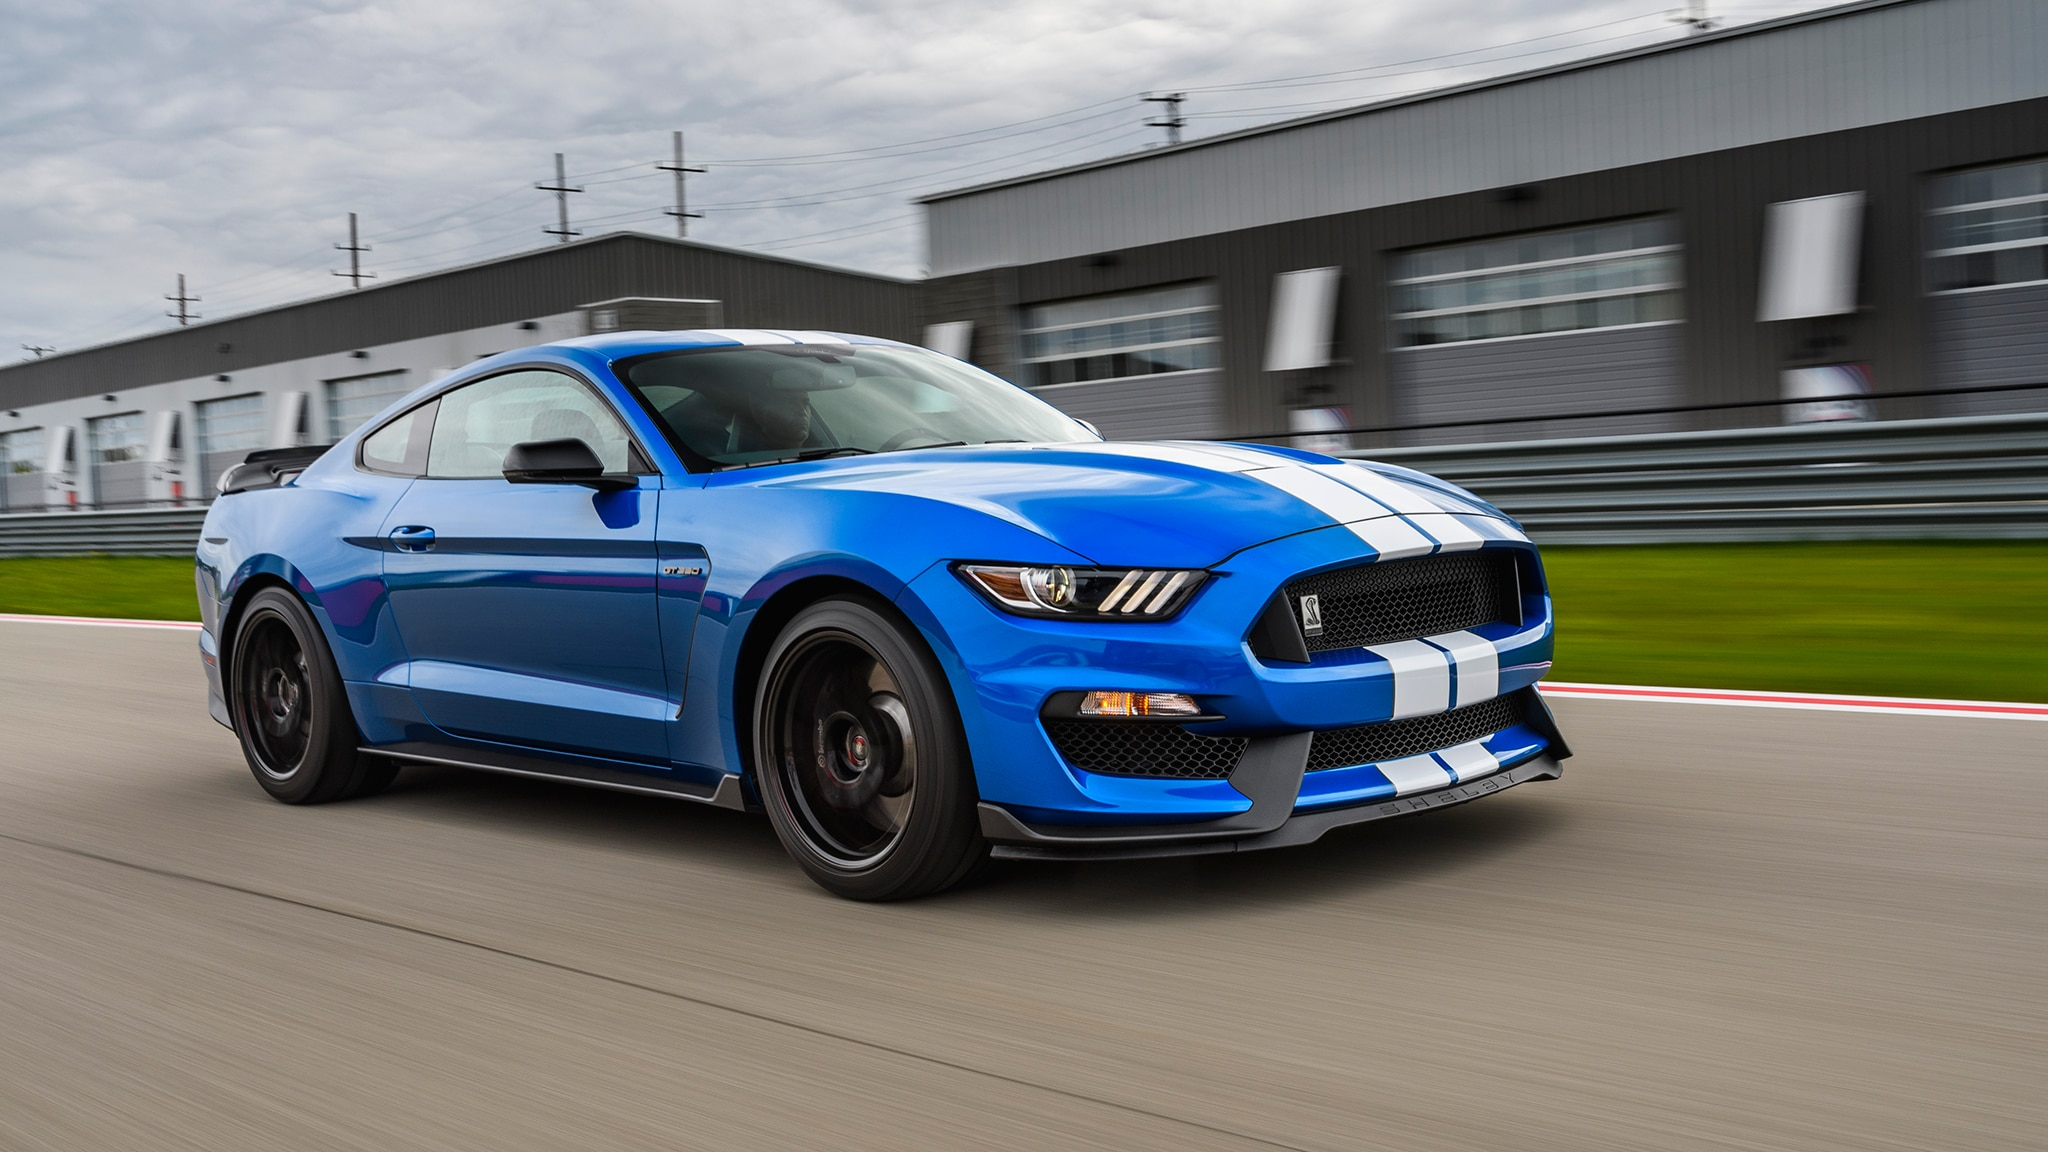 2020 Ford Shelby Mustang GT500 vs. GT350: How They're ...